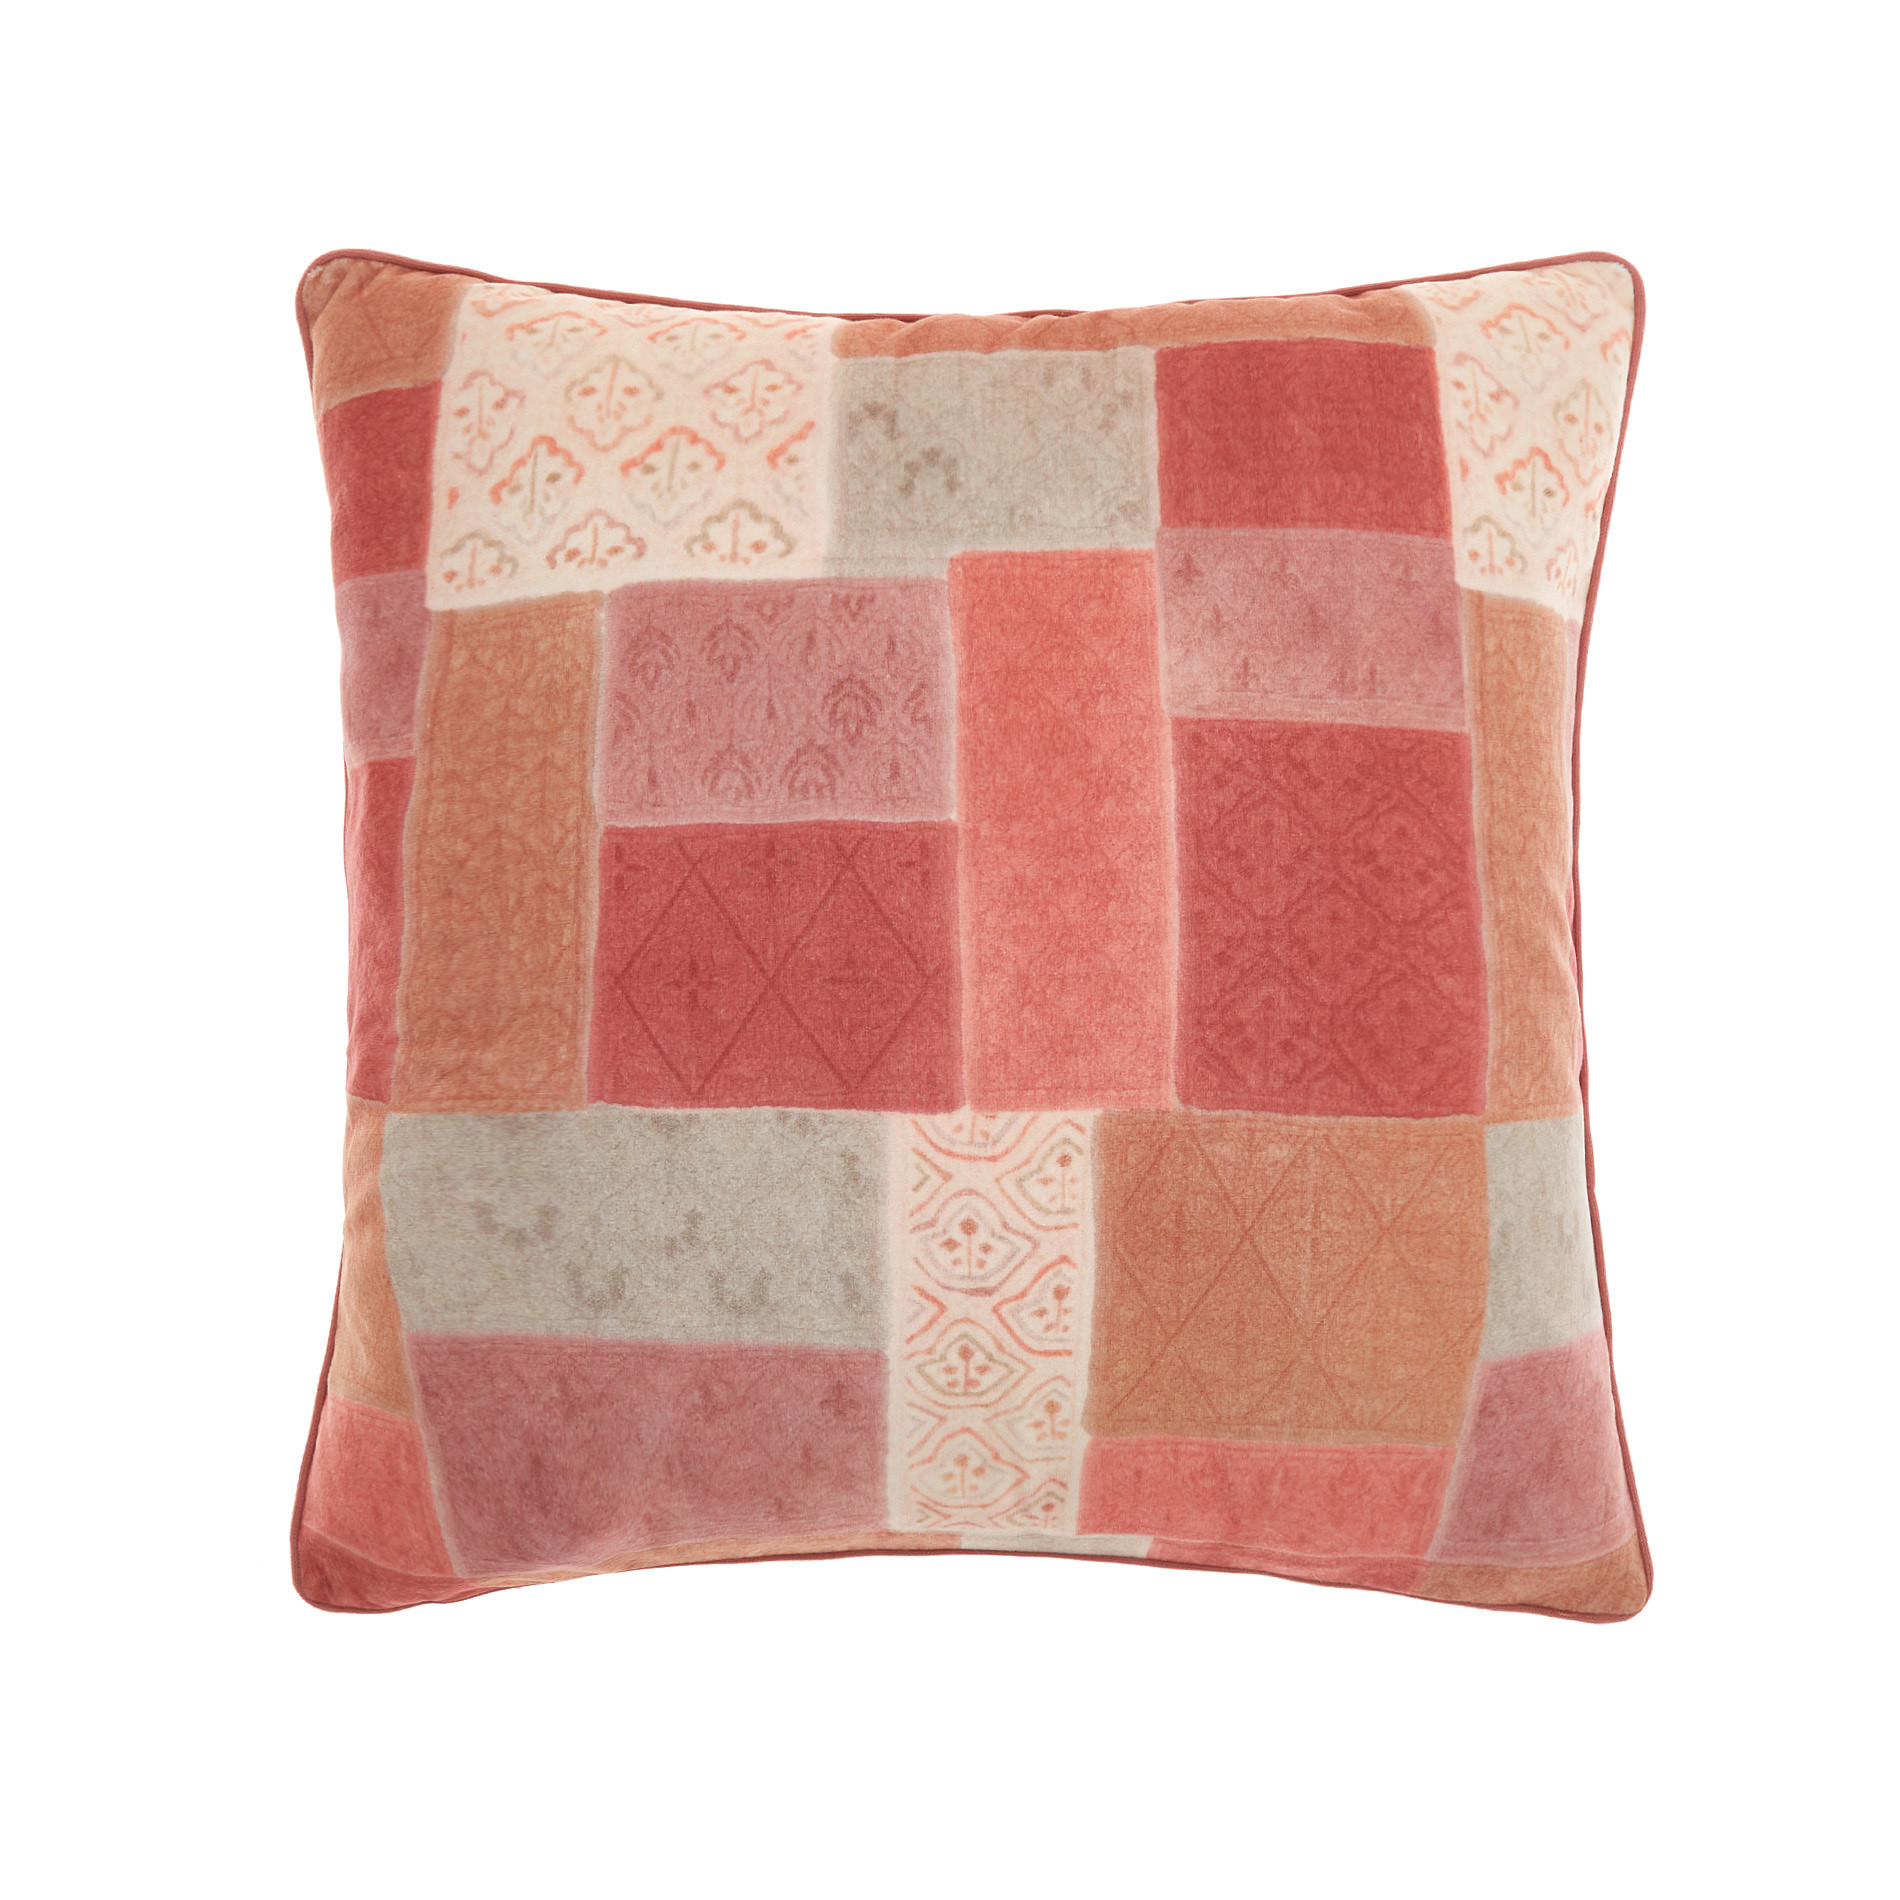 Cuscino tessuto effetto patchwork 45x45cm, Rosa, large image number 0